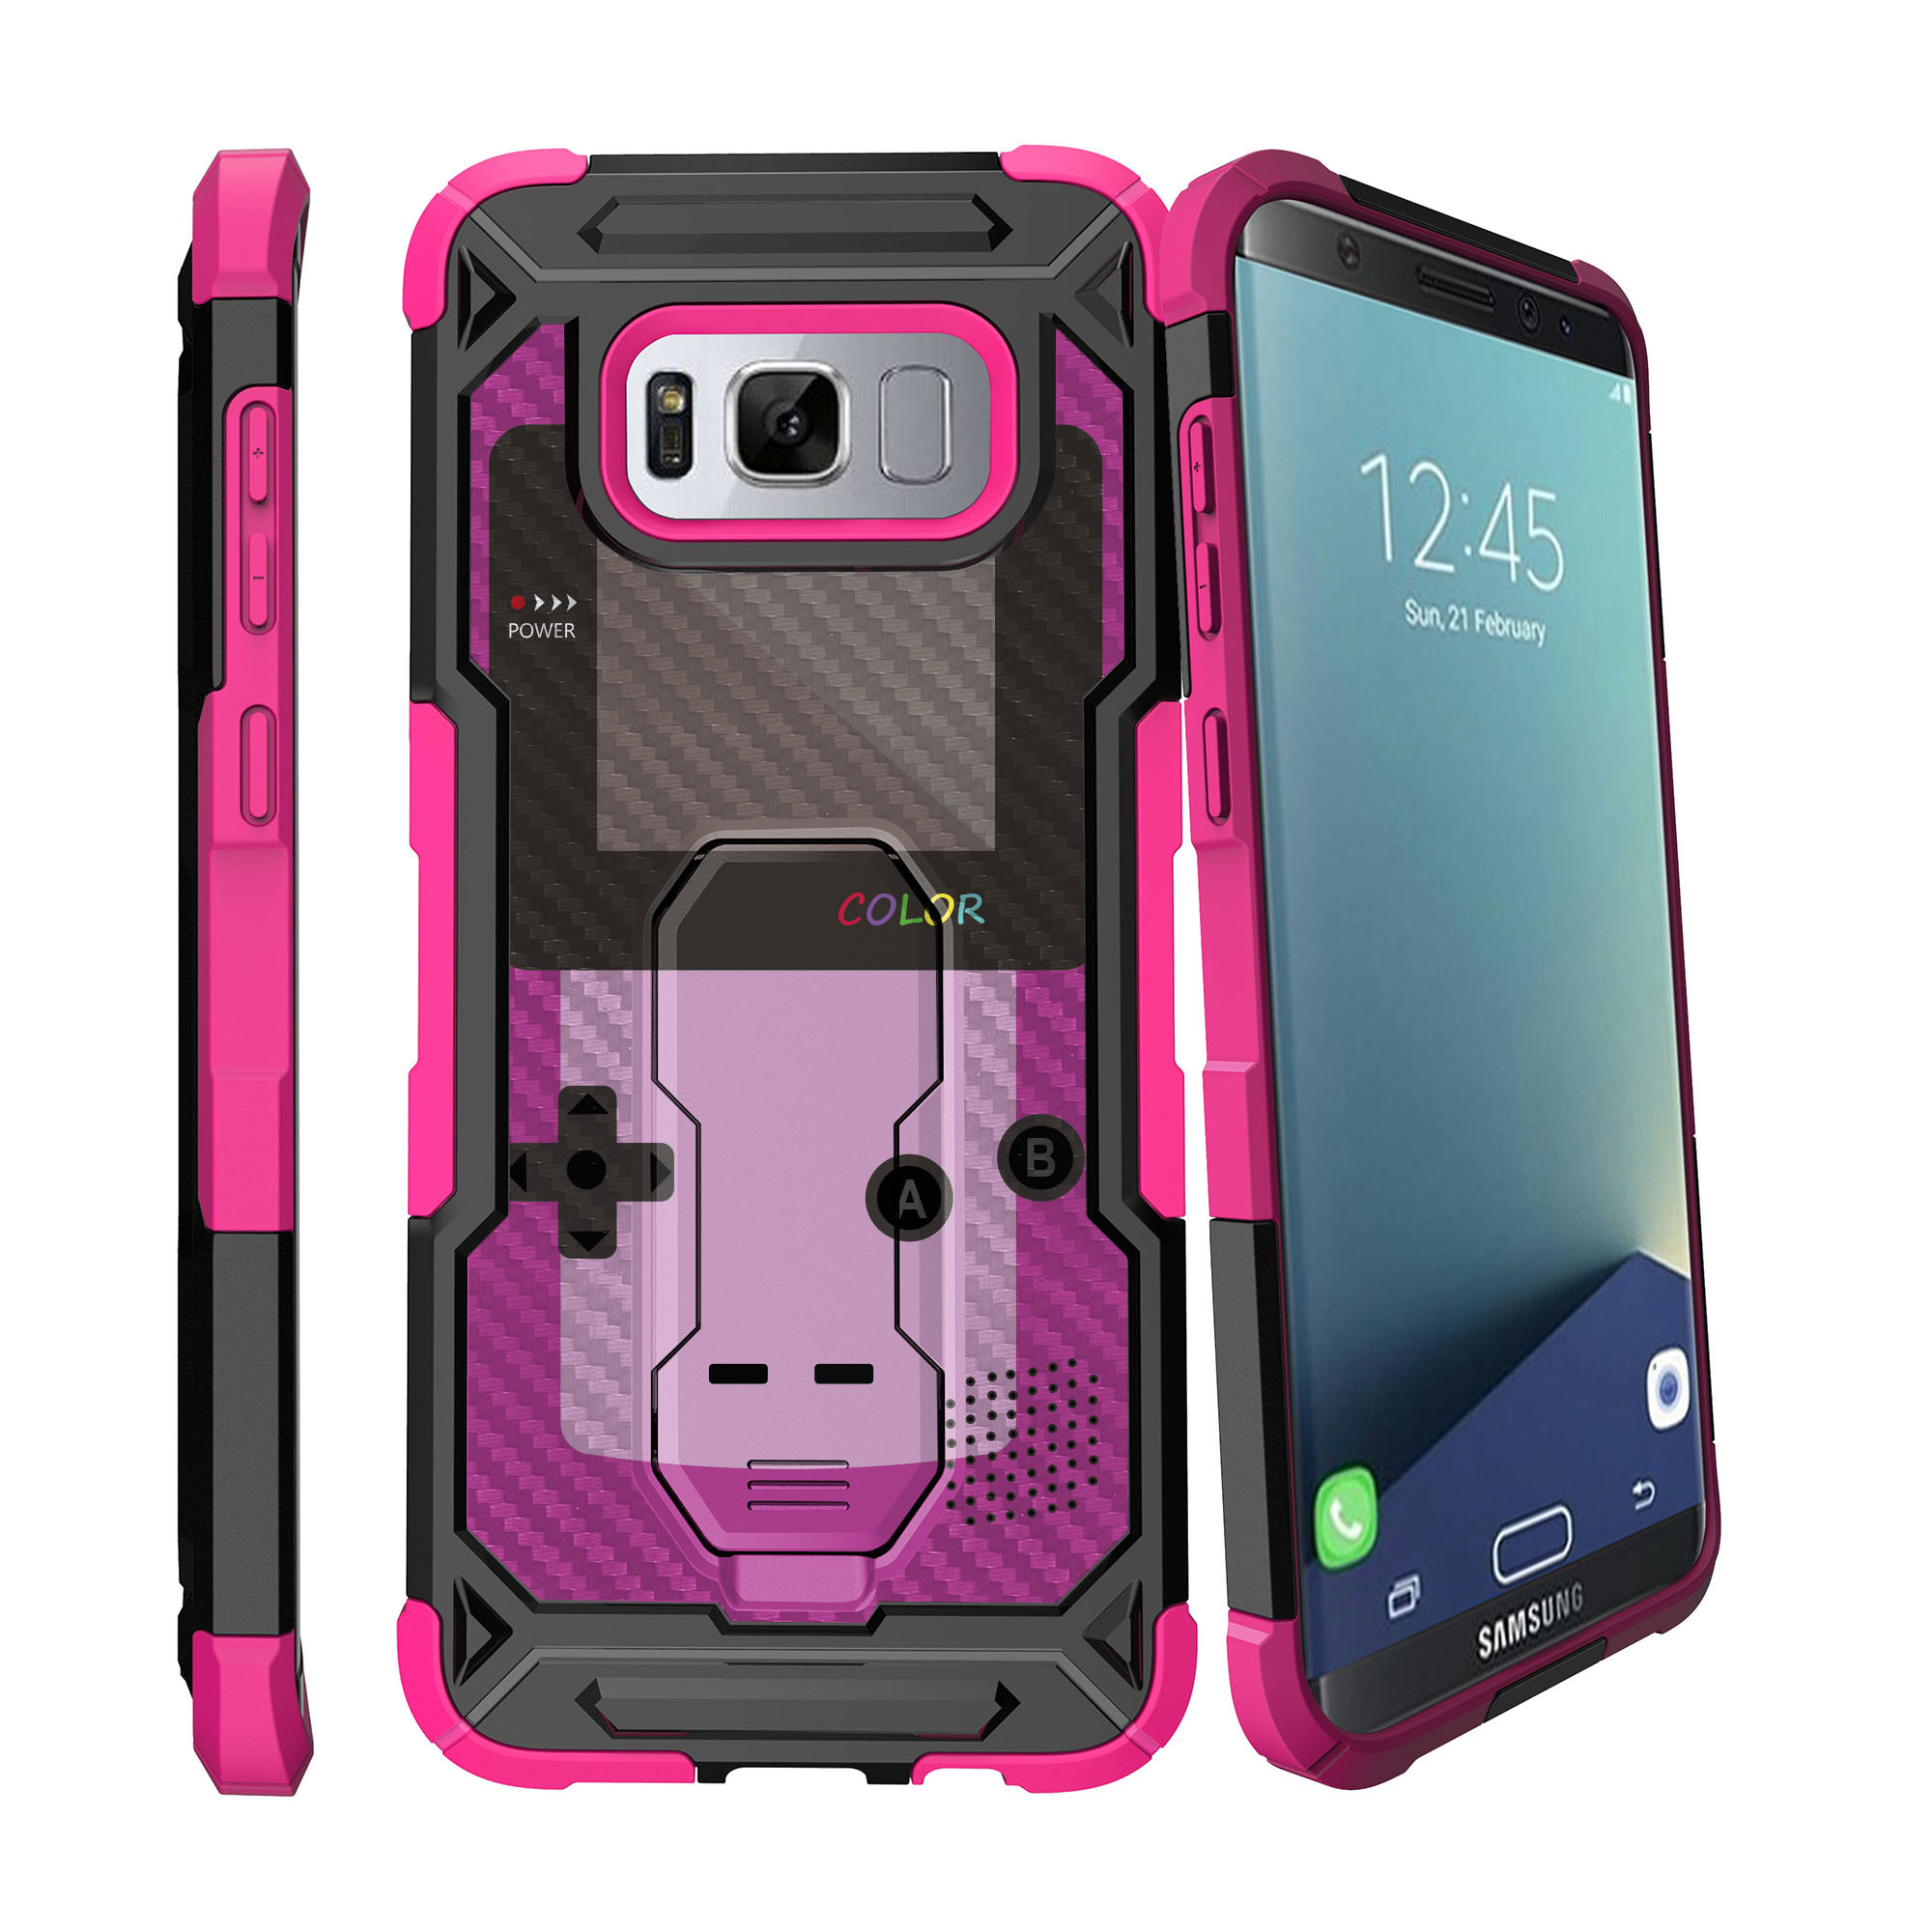 Case for Samsung Galaxy S8 Plus Version [ UFO Defense Case ][Galaxy S8 PLUS SM-G955][Pink Silicone] Carbon Fiber Texture Case with Holster + Stand Gaming Collection